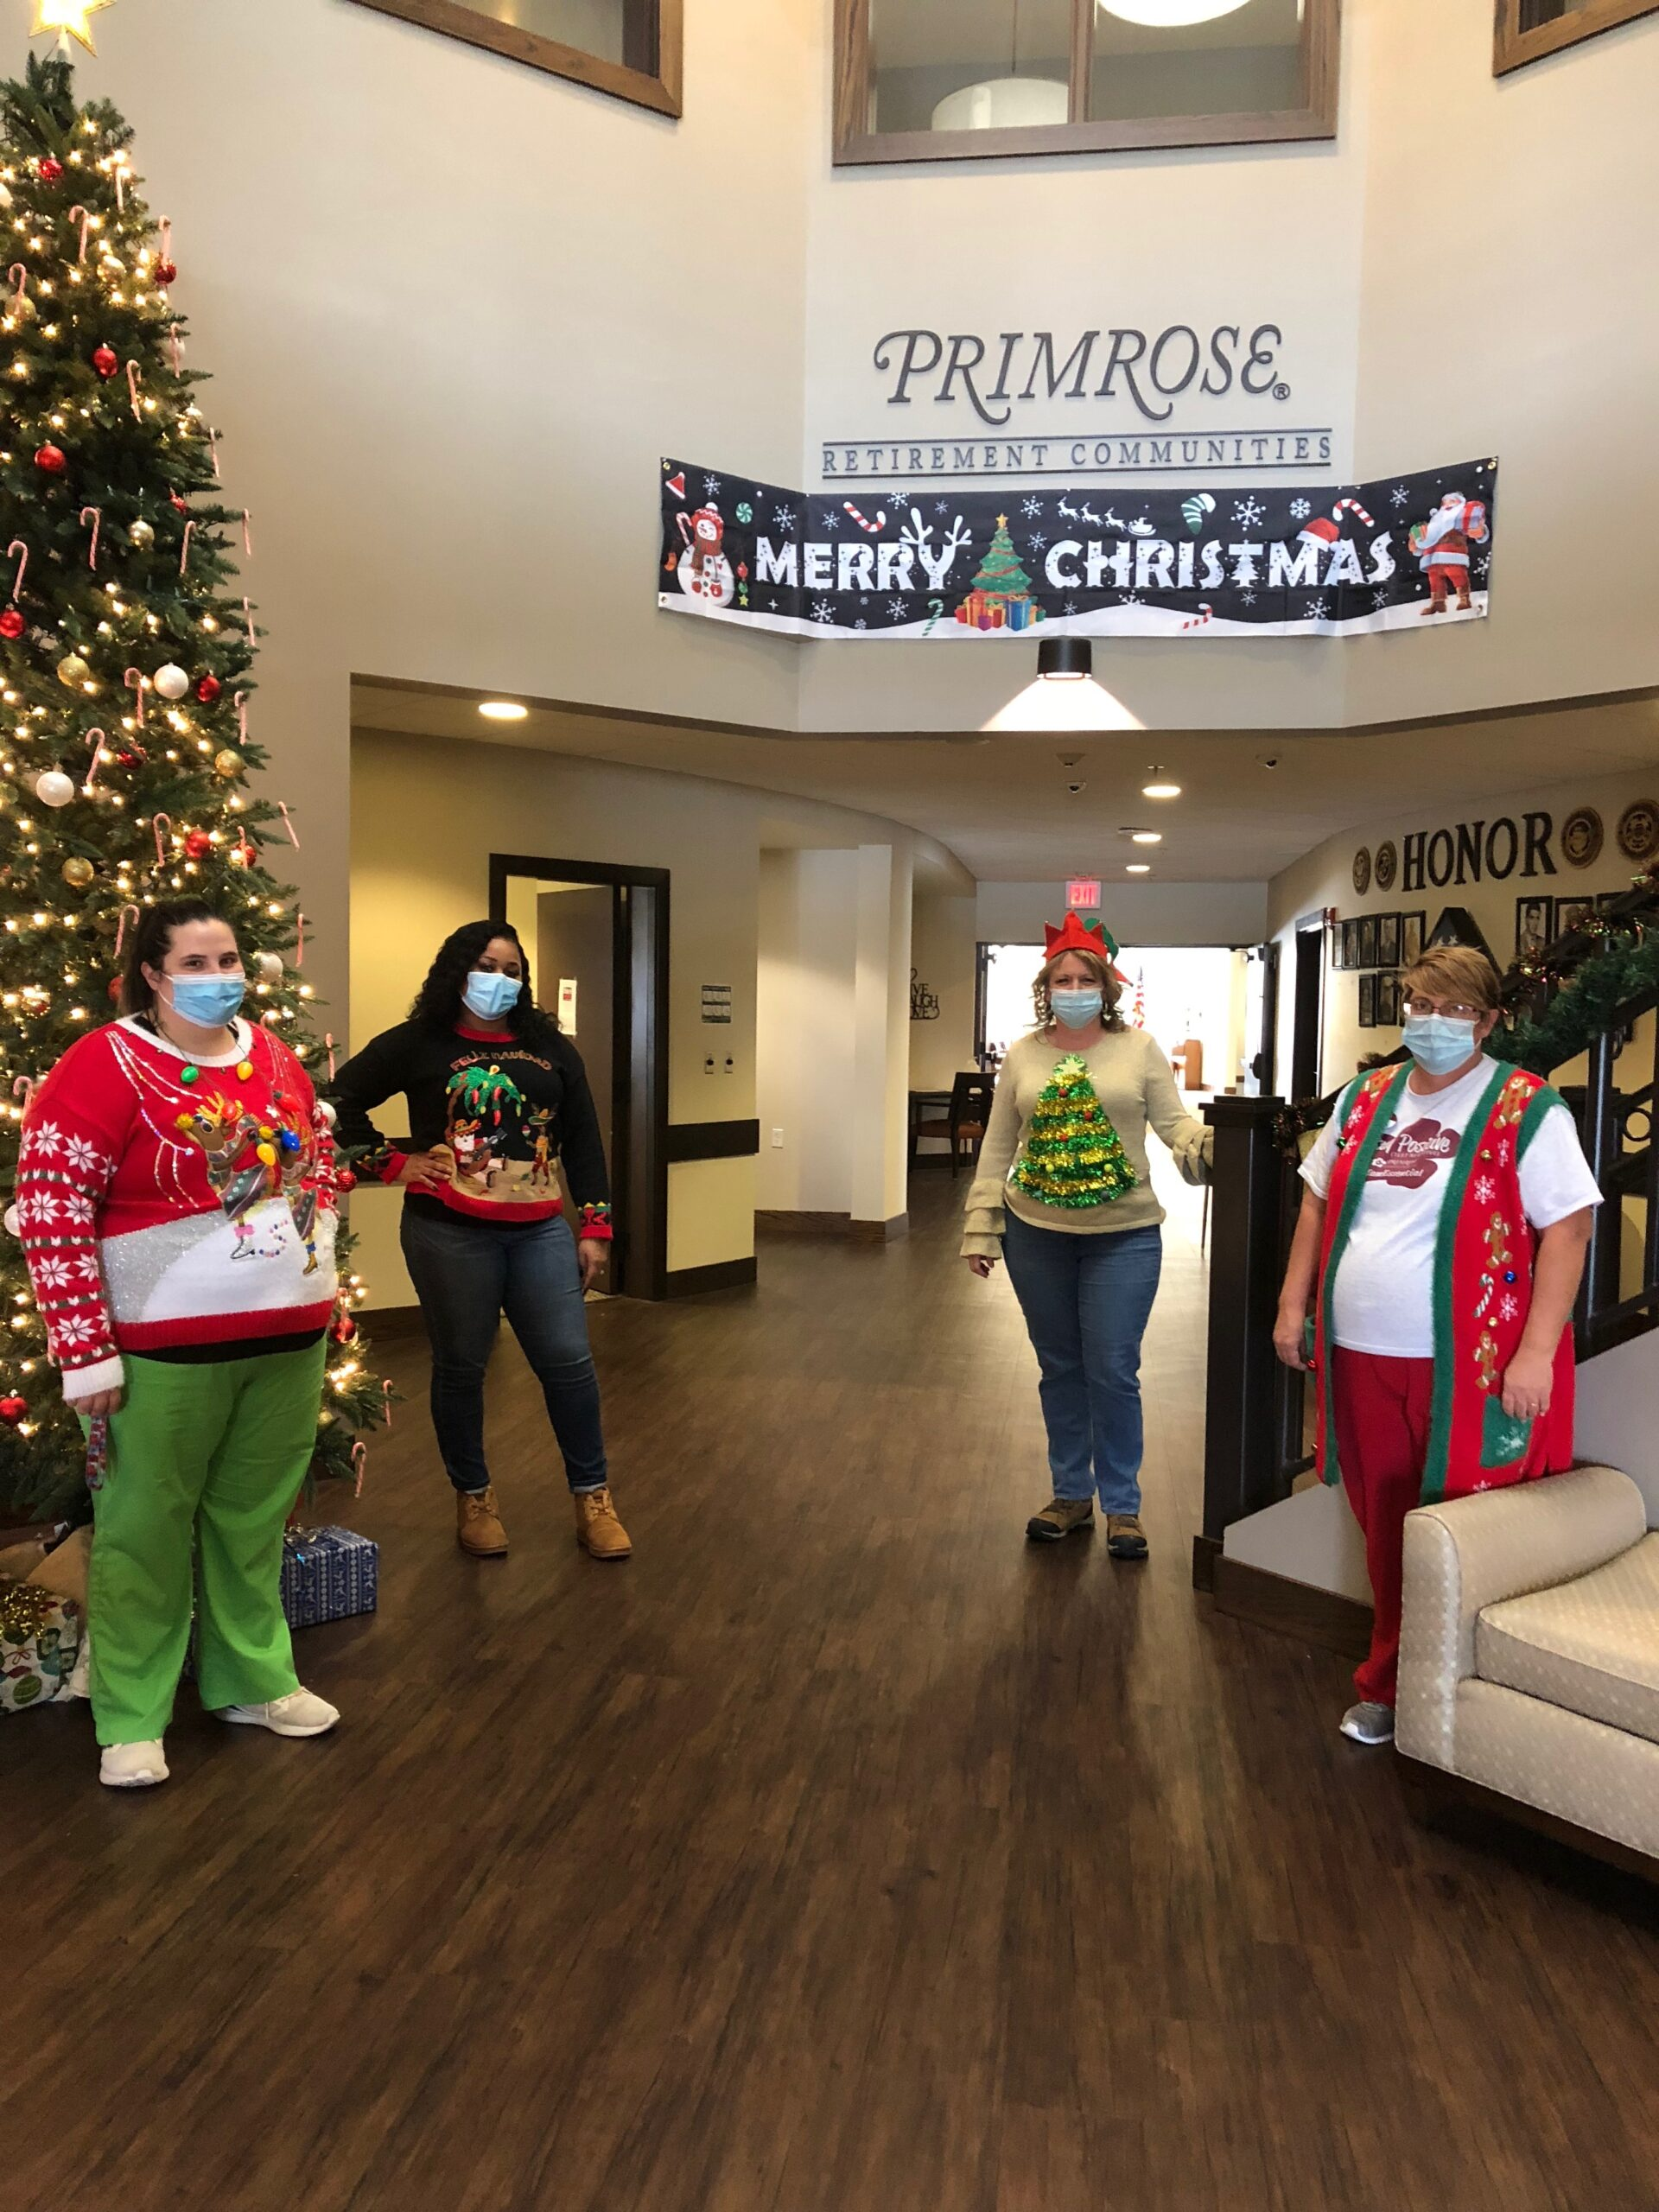 Christmas Spirit Week- Residents and Staff wore different festive sweaters and accessories during the week of Christmas to keep the season fun and festive!